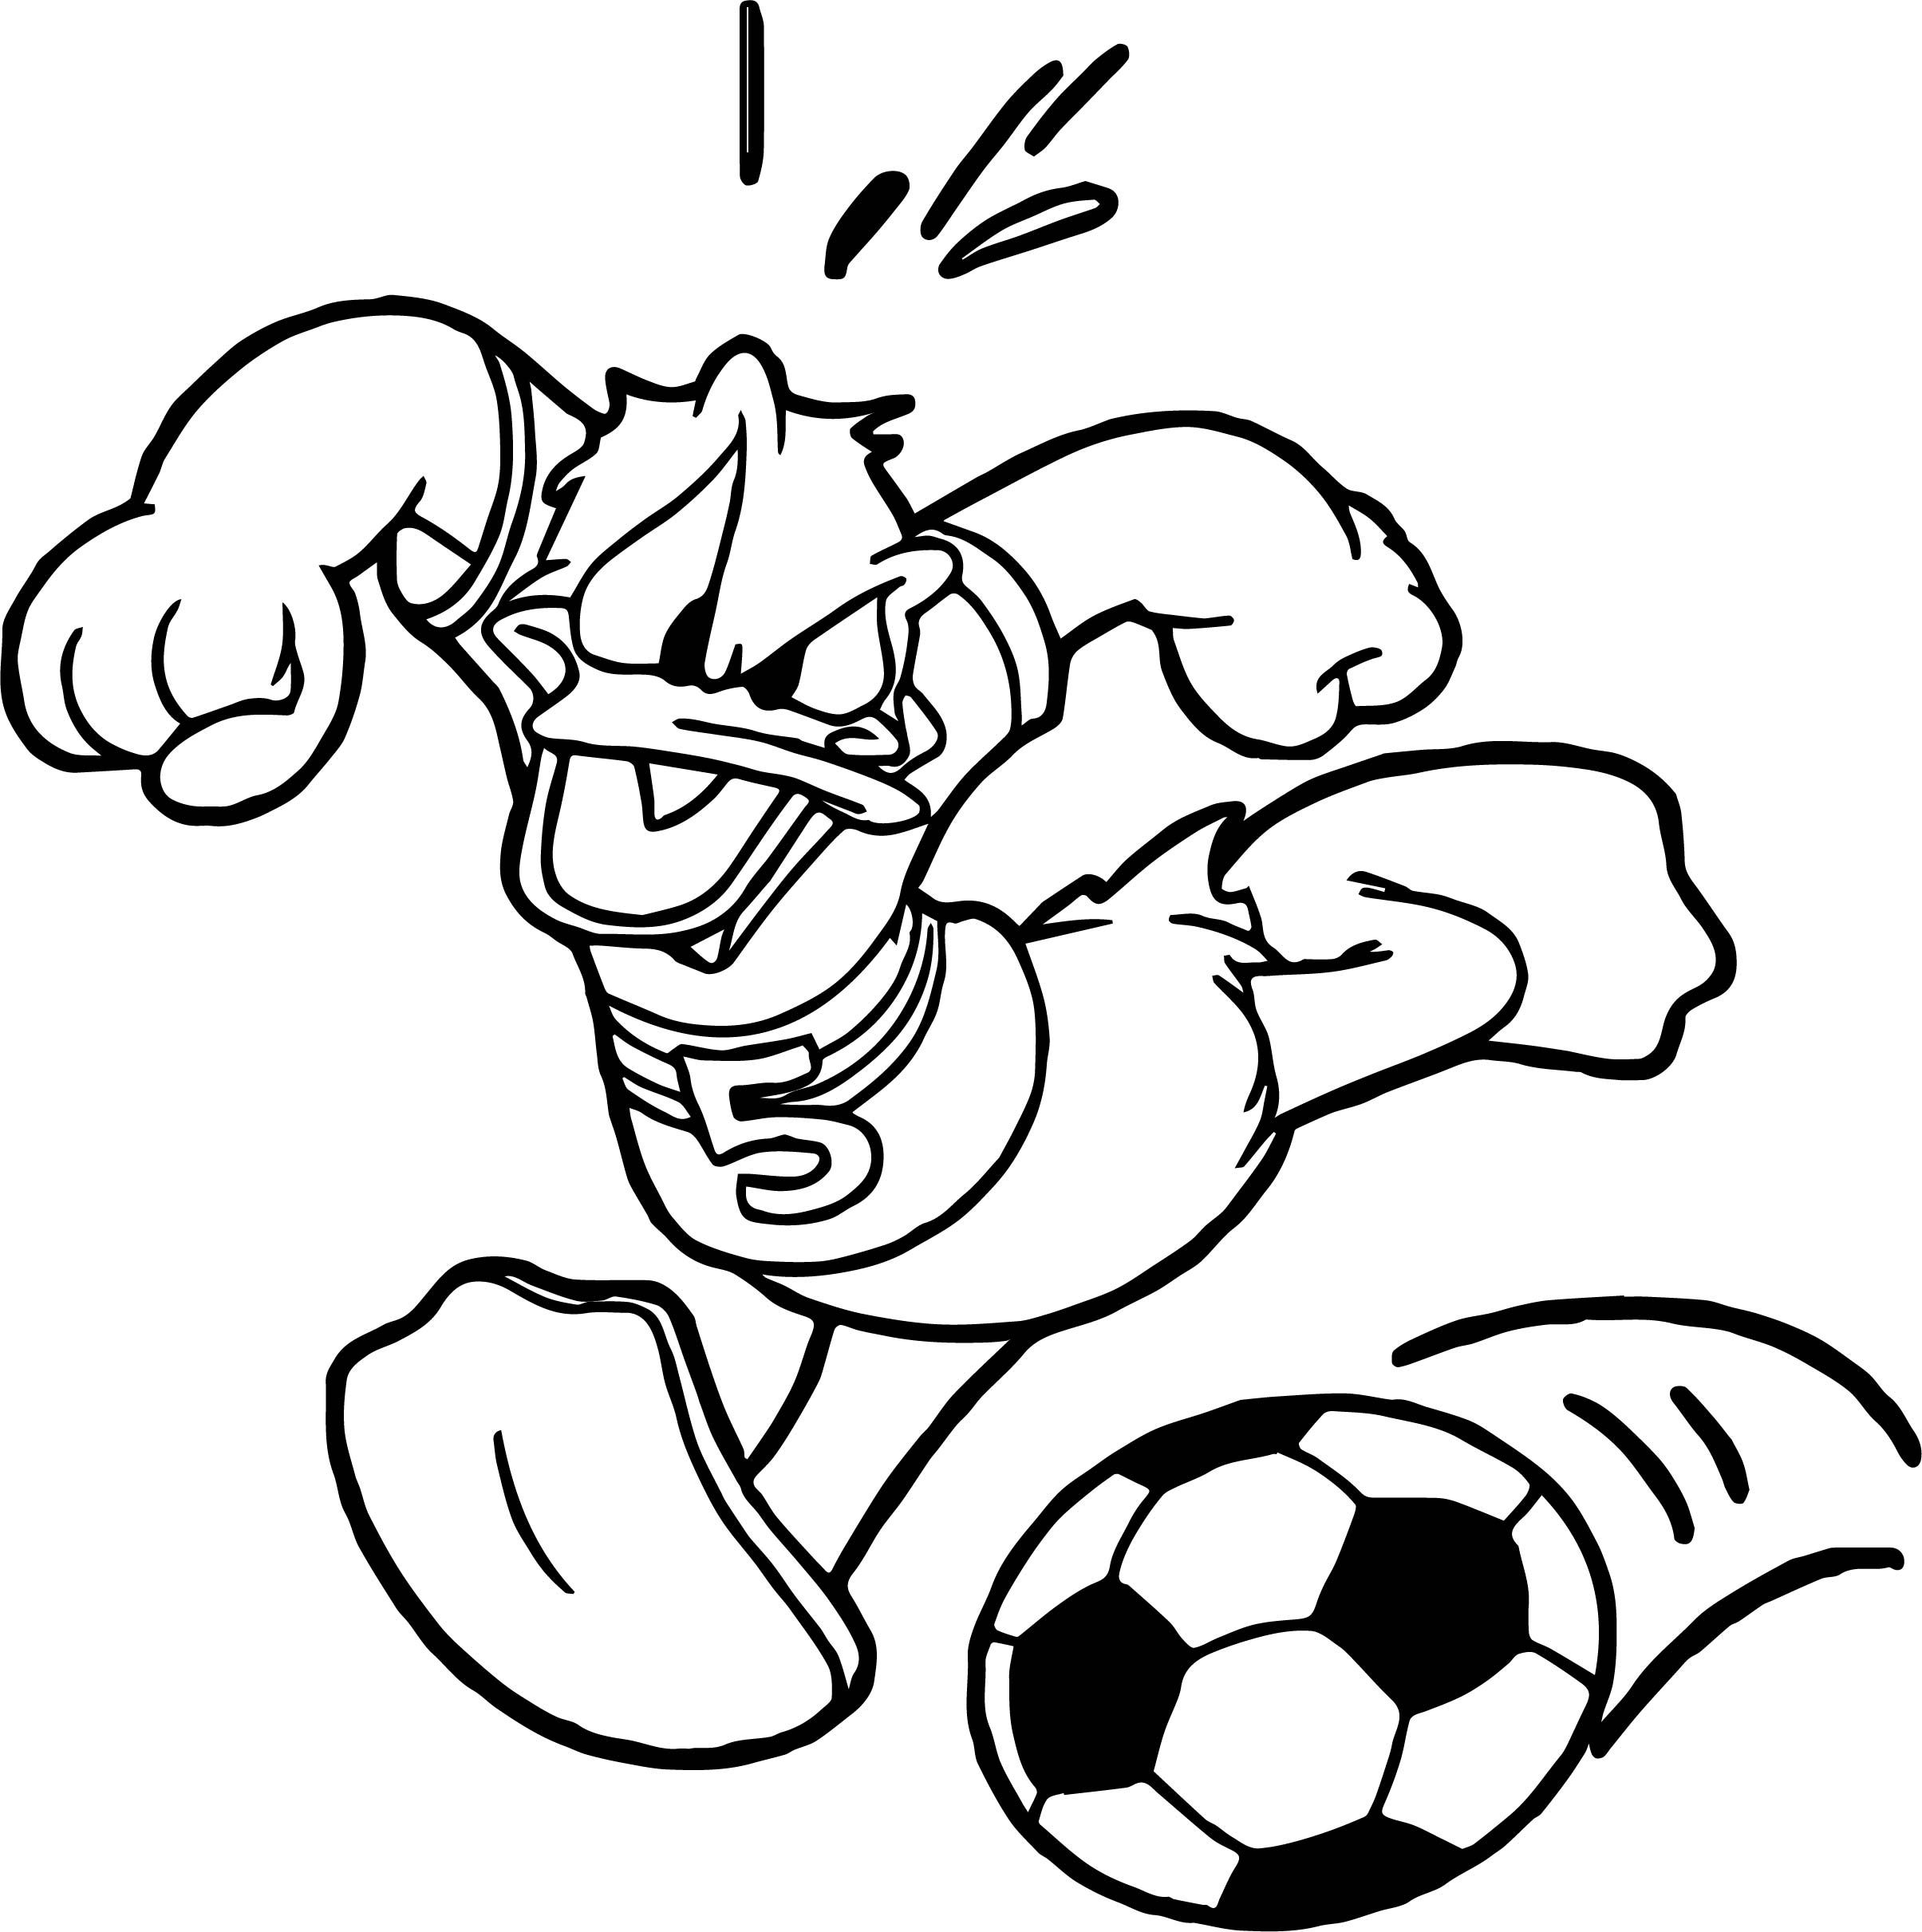 Awesome Donald Soccer Playing Football Coloring Page Football